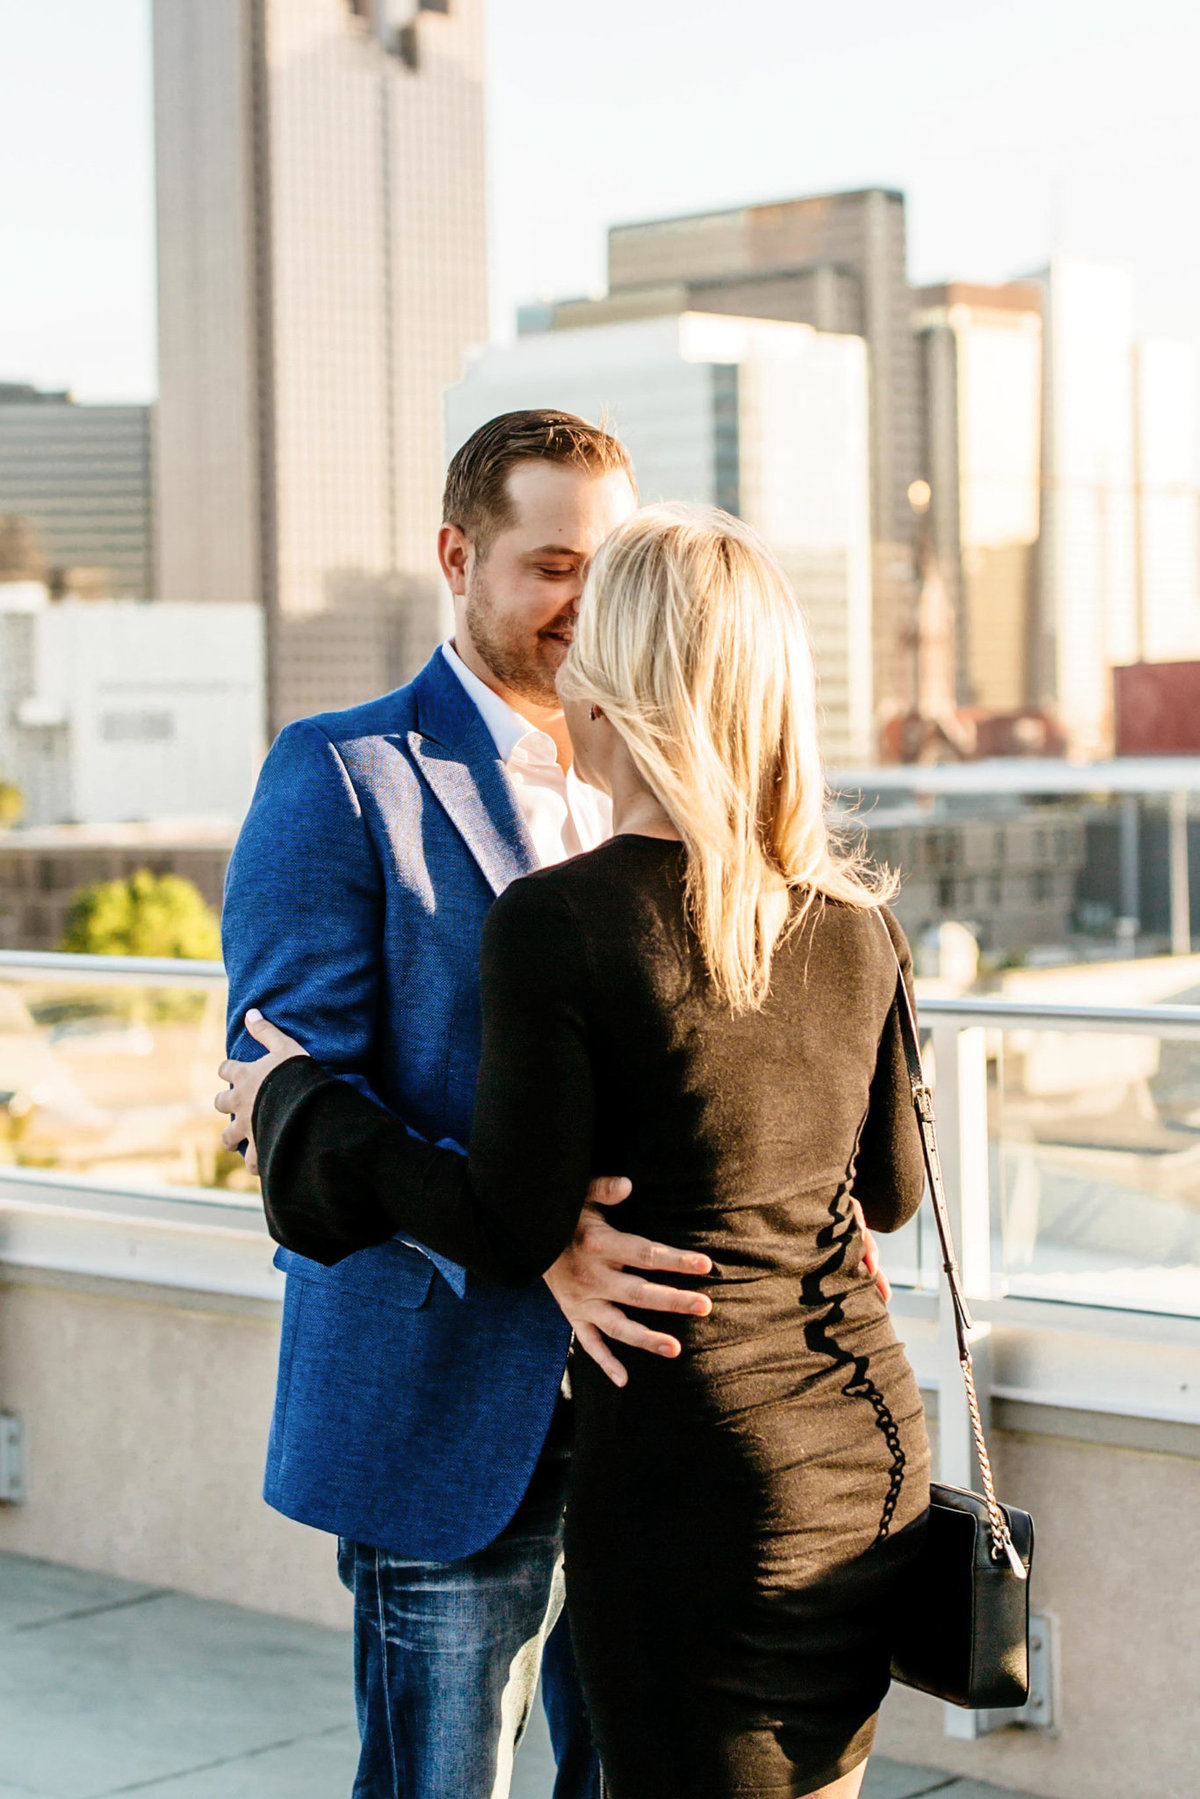 Eric & Megan - Downtown Dallas Rooftop Proposal & Engagement Session-16